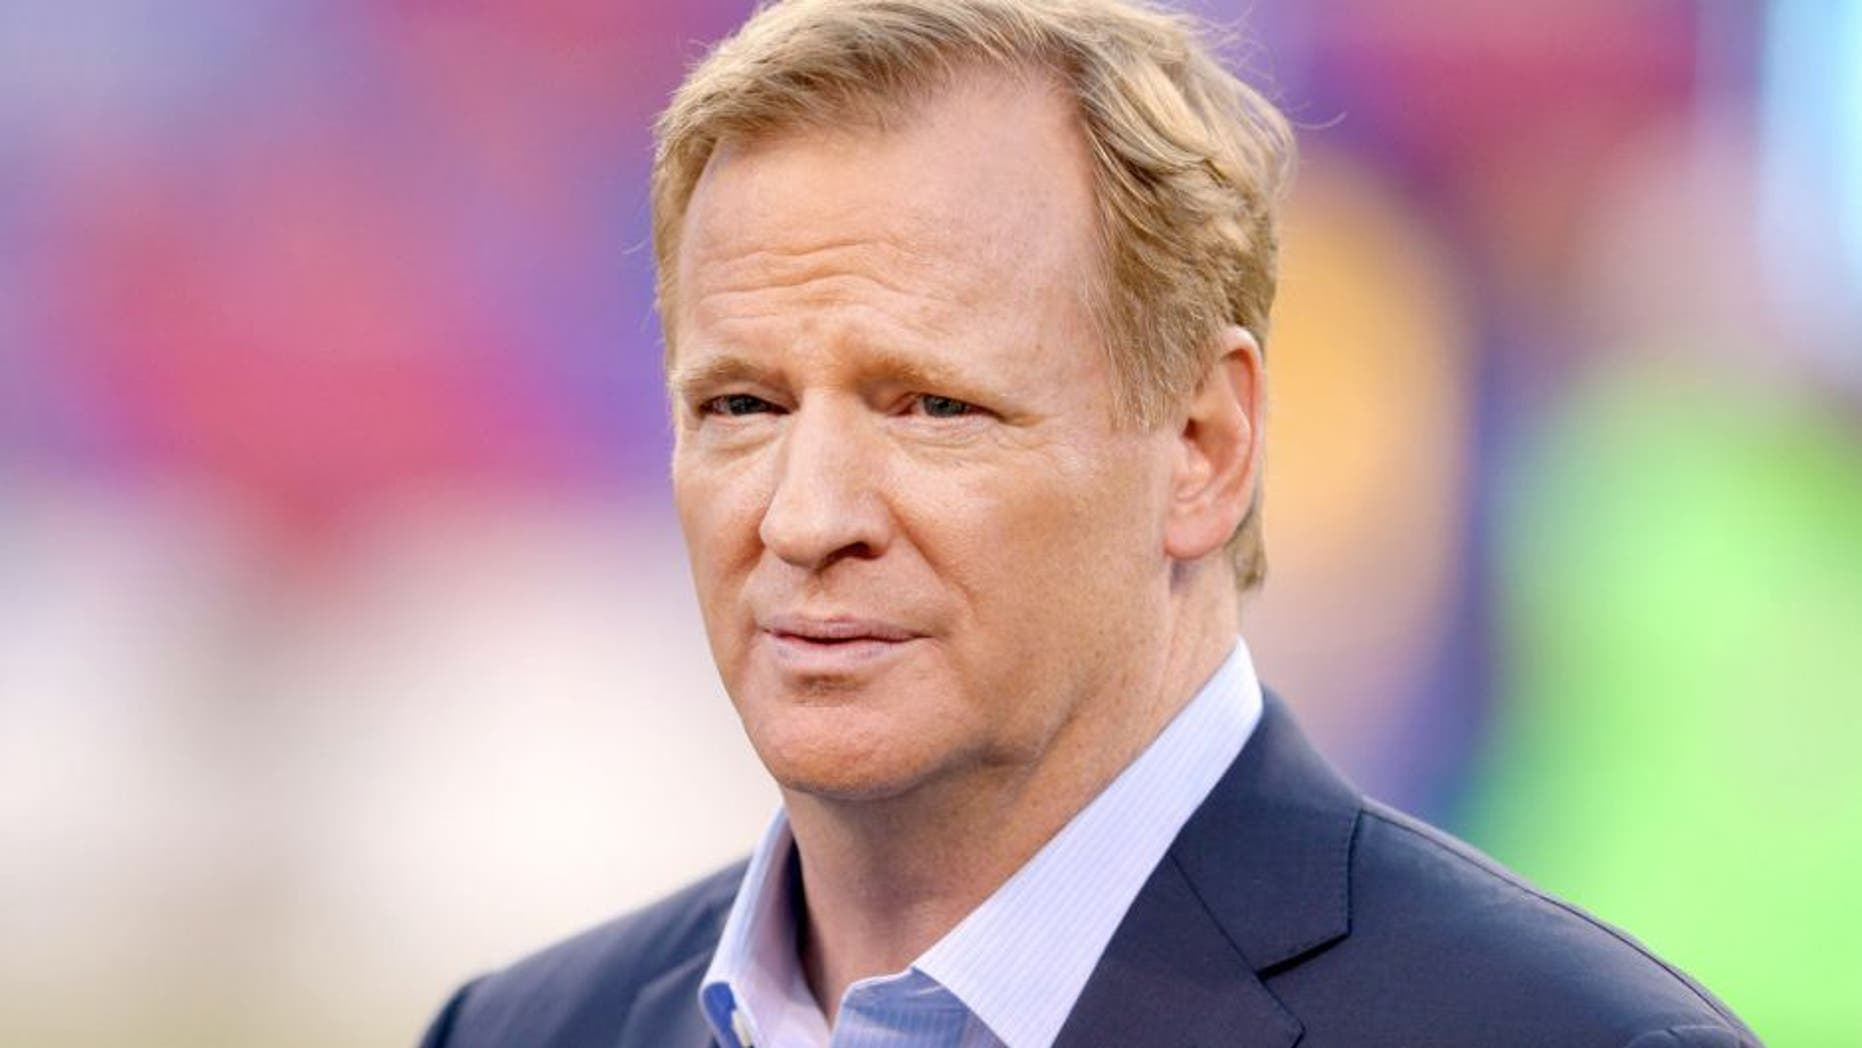 Sep 24, 2015; East Rutherford, NJ, USA; NFL commissioner Roger Goodell on the field before a game between the New York Giants and the Washington Redskins at MetLife Stadium. Mandatory Credit: Brad Penner-USA TODAY Sports